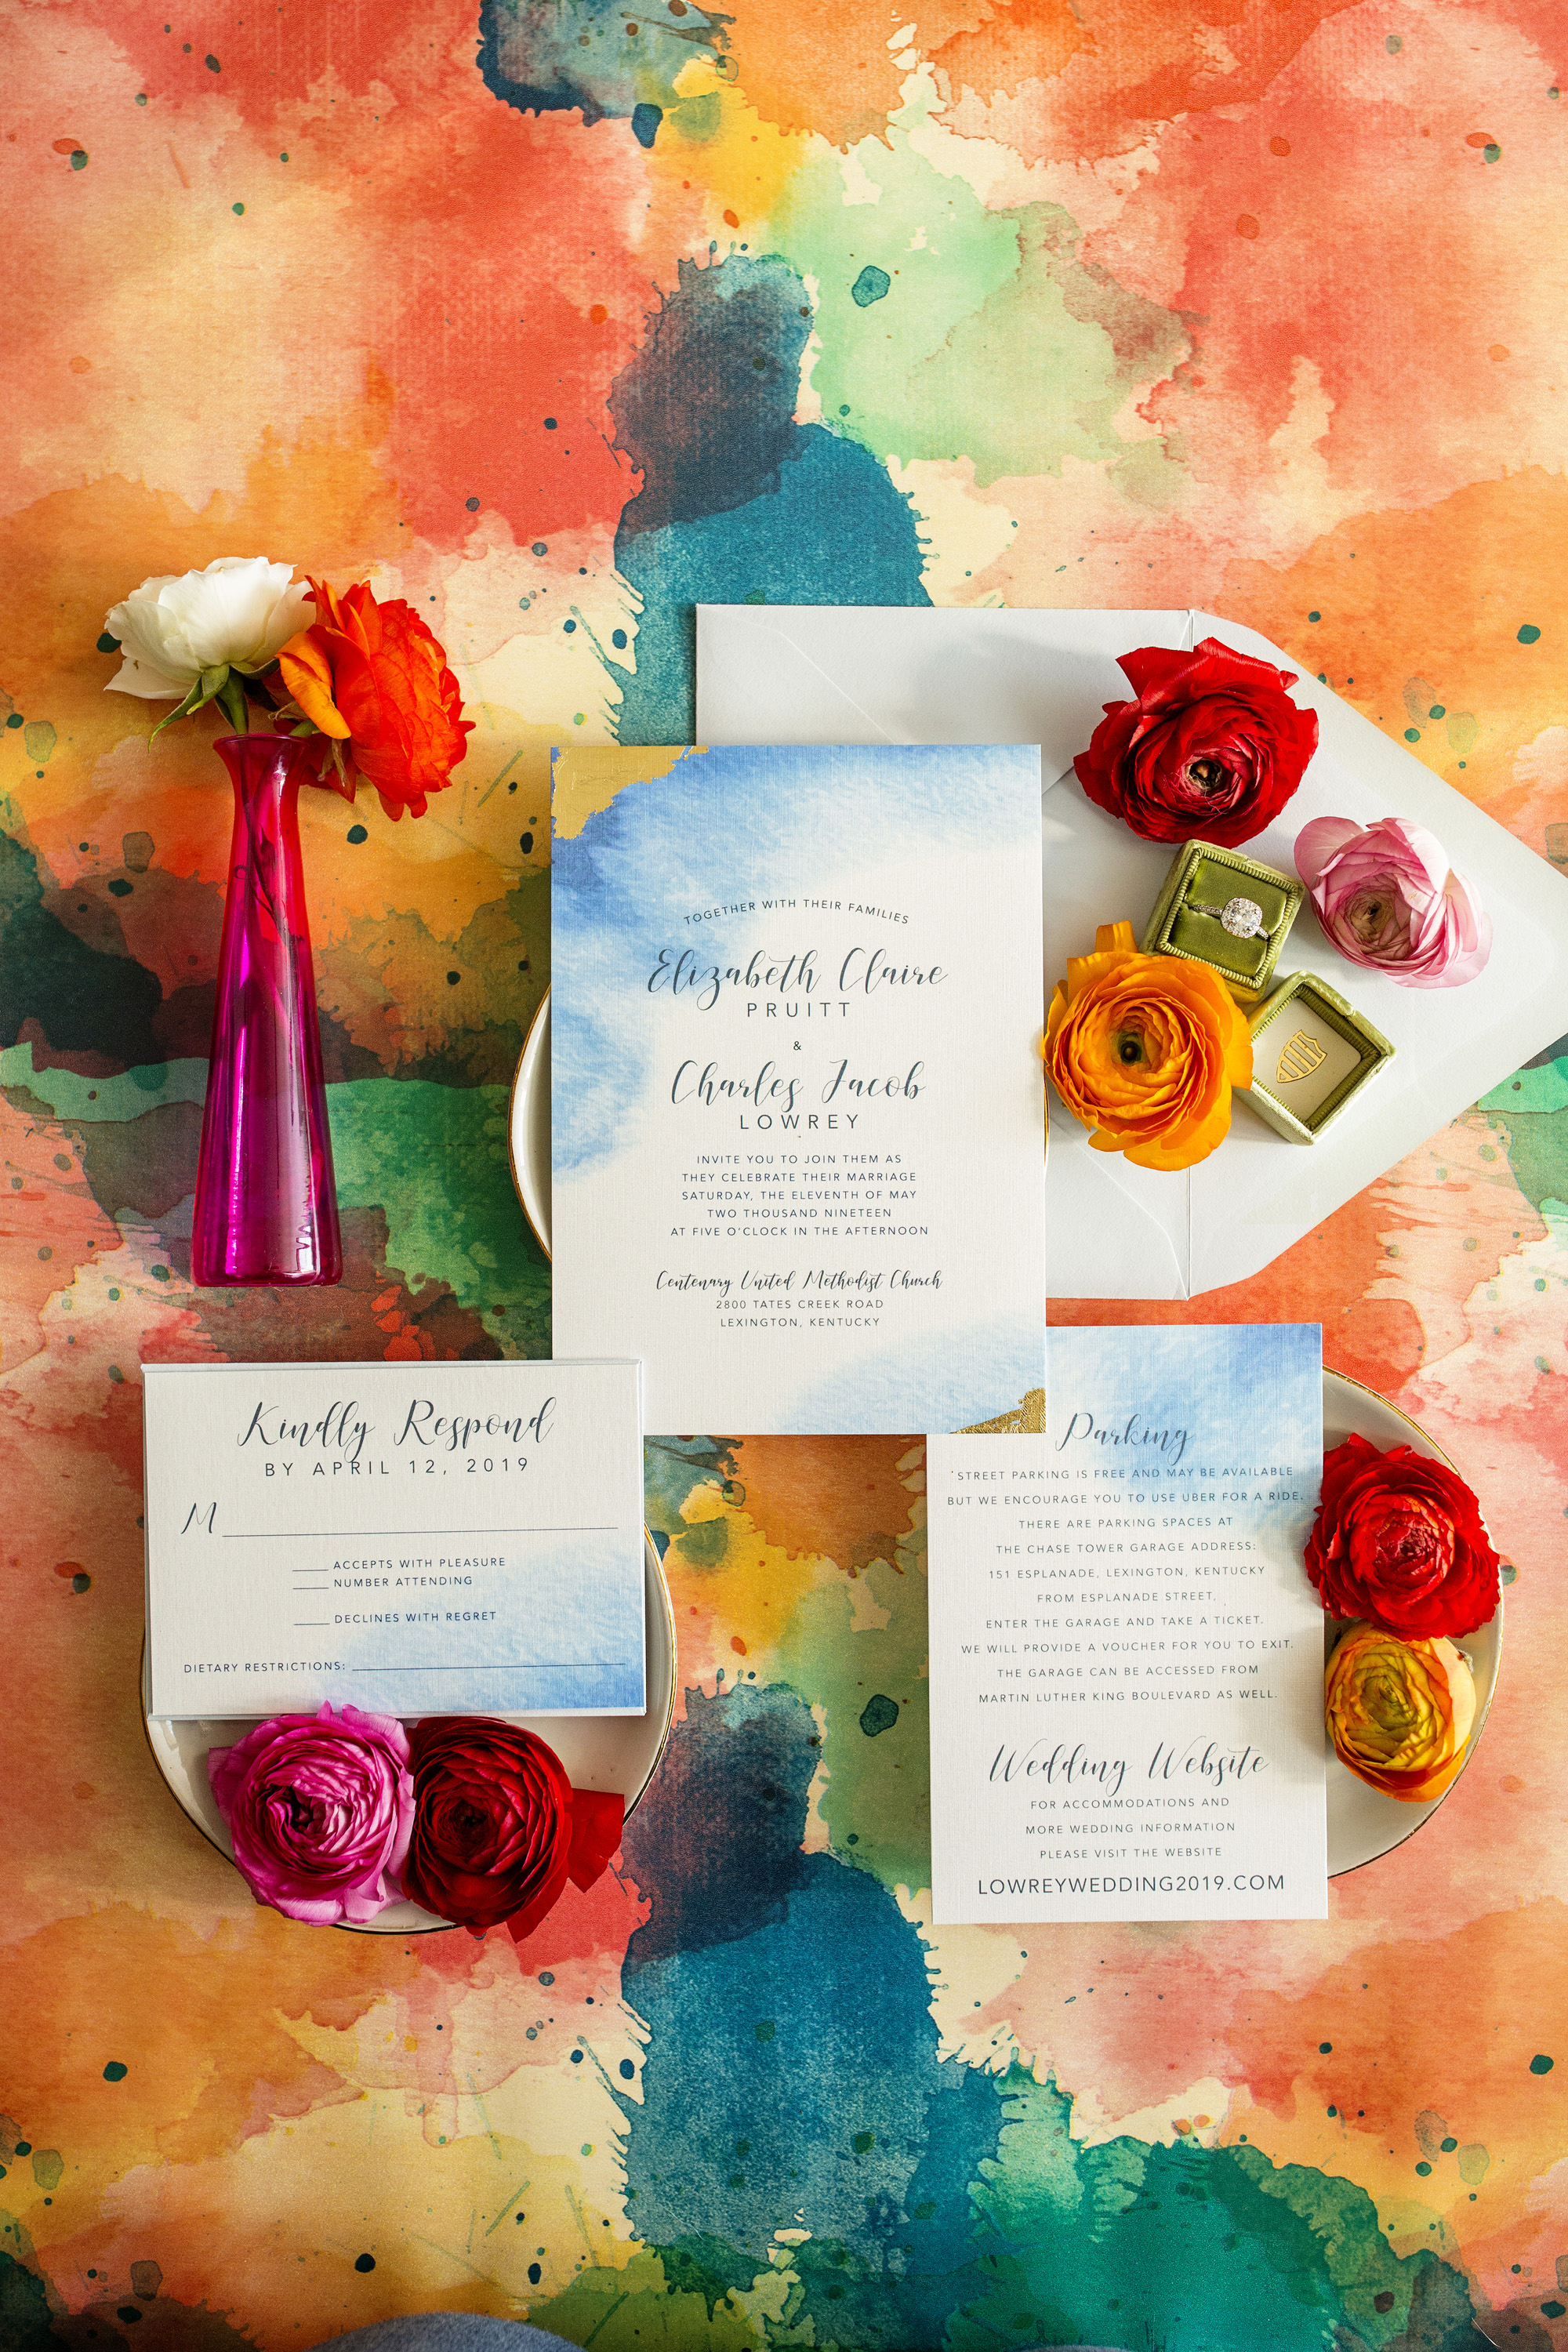 Seriously_Sabrina_Photography_Commercial_Simply_Done_Invites_2019_March_034